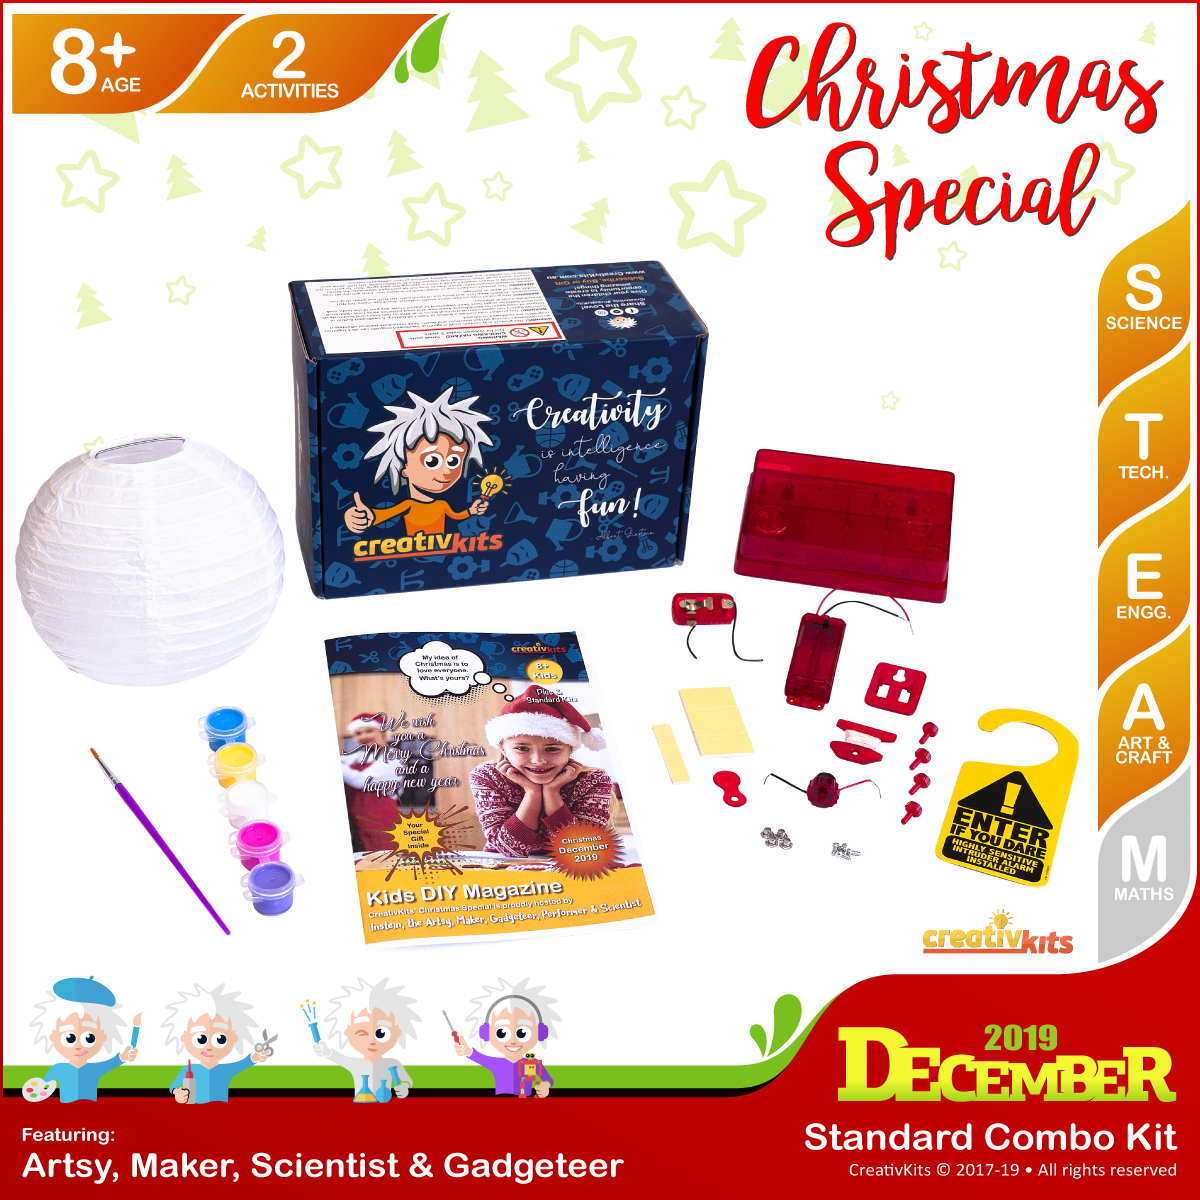 December Standard Combo Kit • Age 8 plus • DIY Intruder Alarm and Painted Xmas Lantern